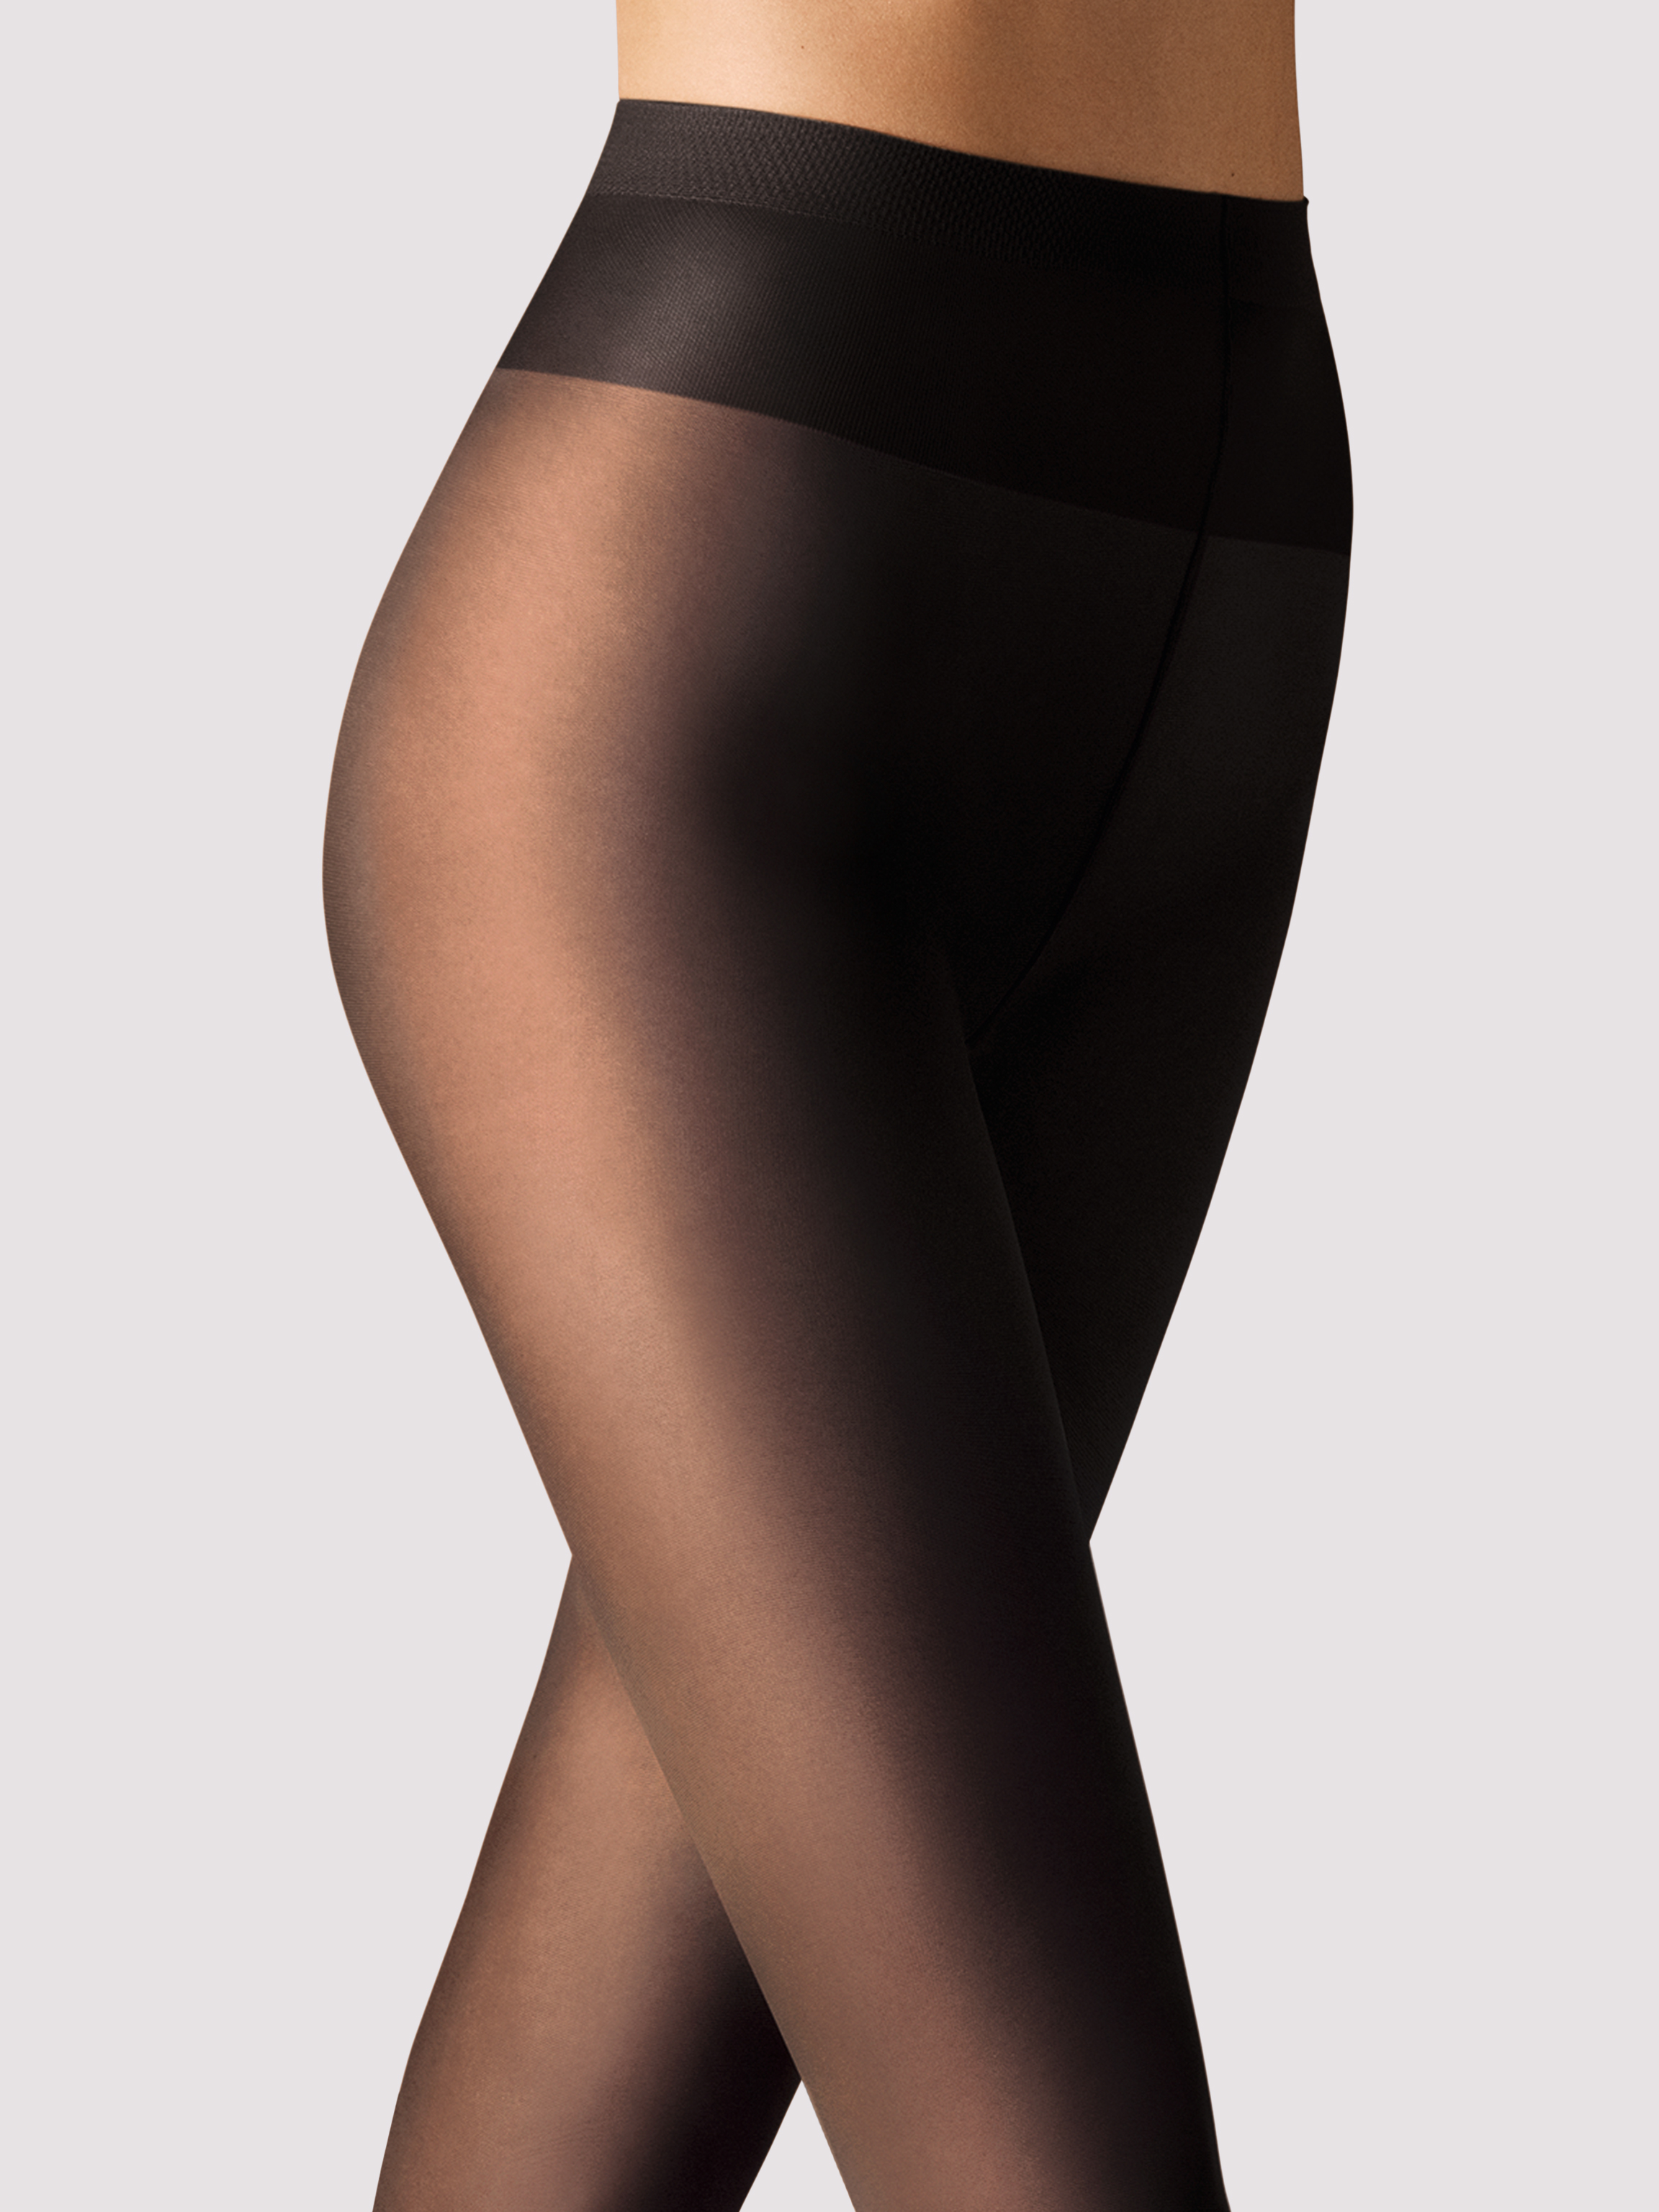 Wolford Apparel & Accessories > Clothing > 15 Tights